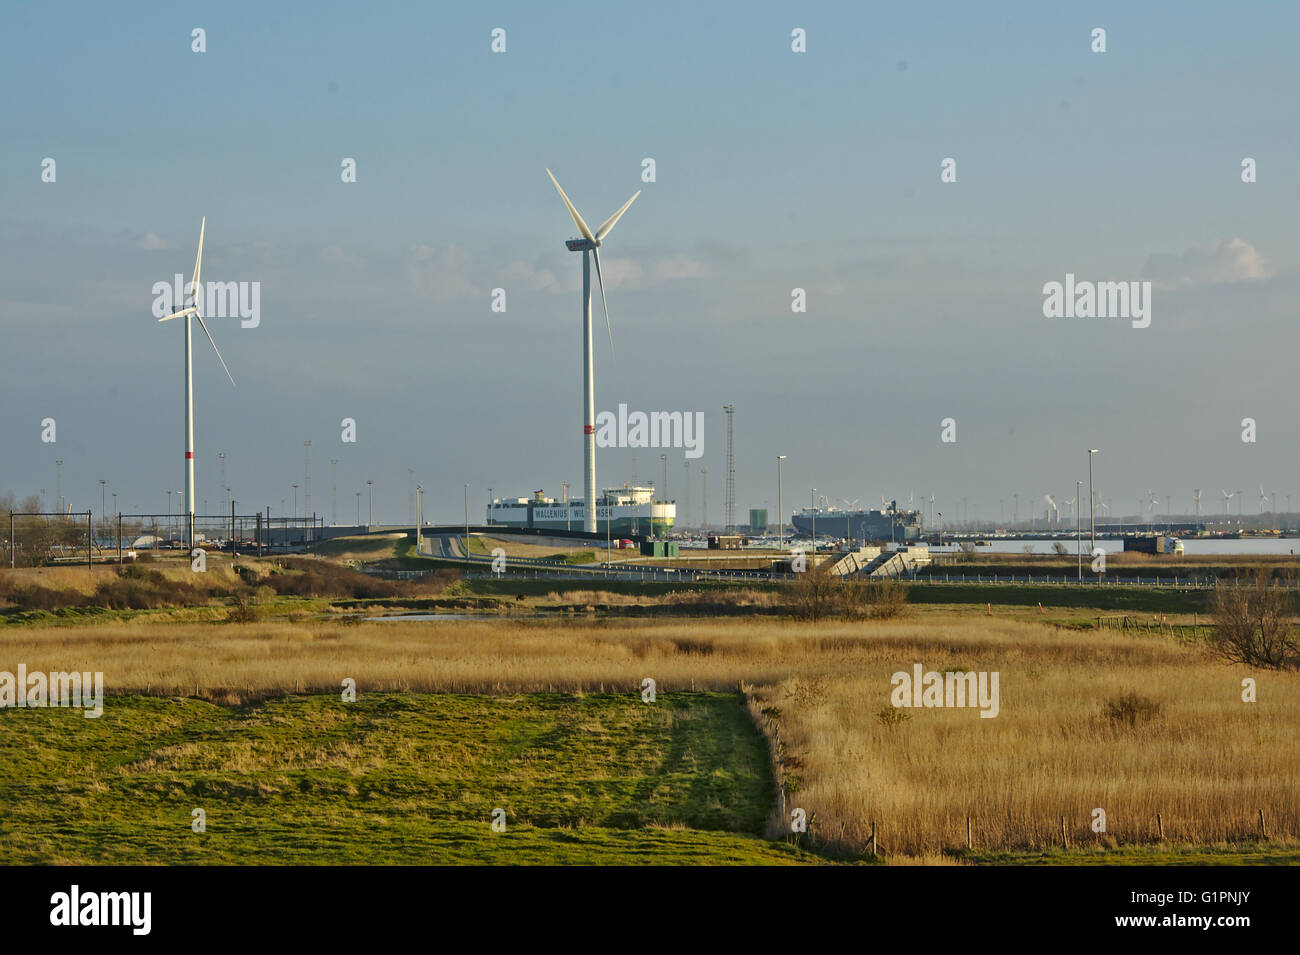 Nature and industry. polder wetlands with ships and windmills of Port of zeebrugge behind - Stock Image